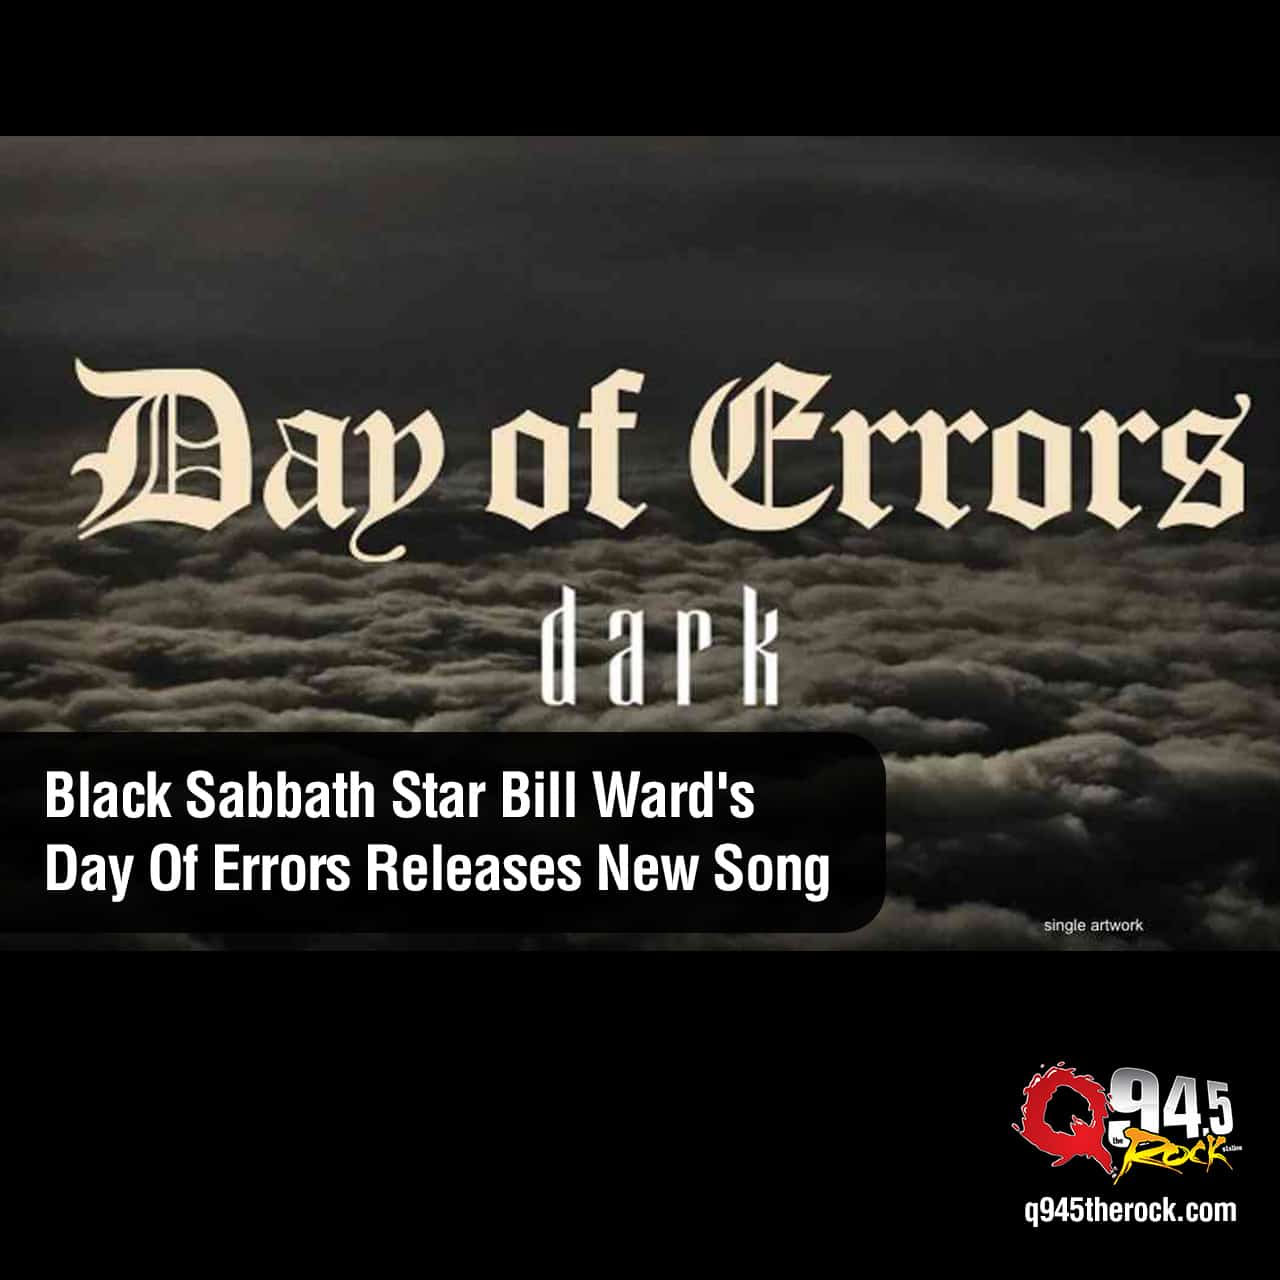 Black Sabbath star Bill Ward's Day Of Errors Releases New Song